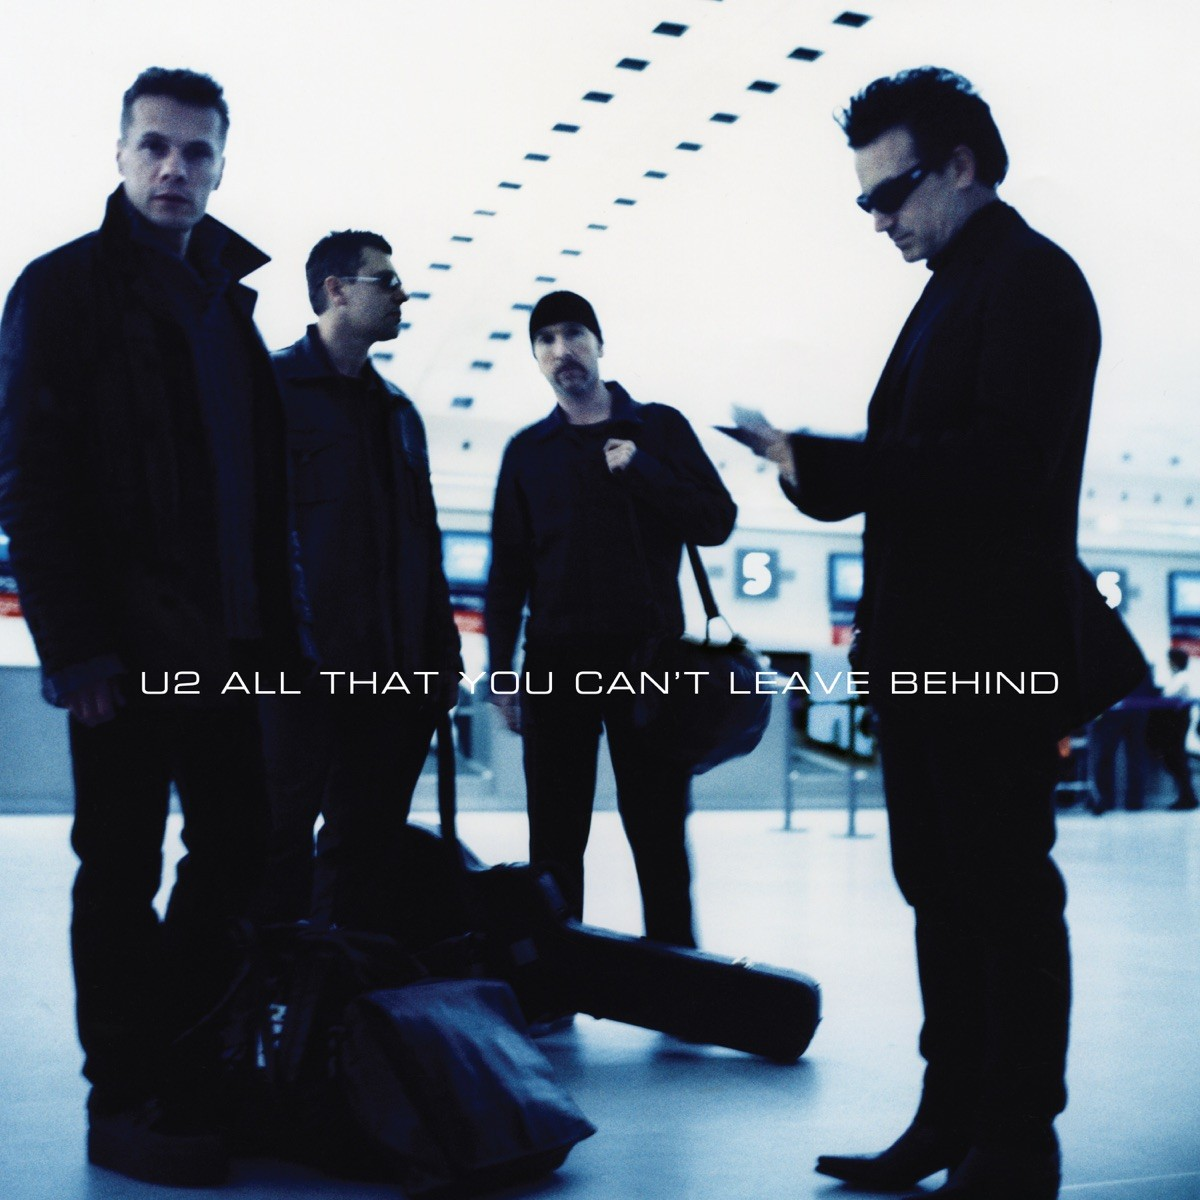 U2 - All That You Can't Leave Behind (20th Anniversary Edition / Deluxe / Remastered 2020) CD - 060250736348